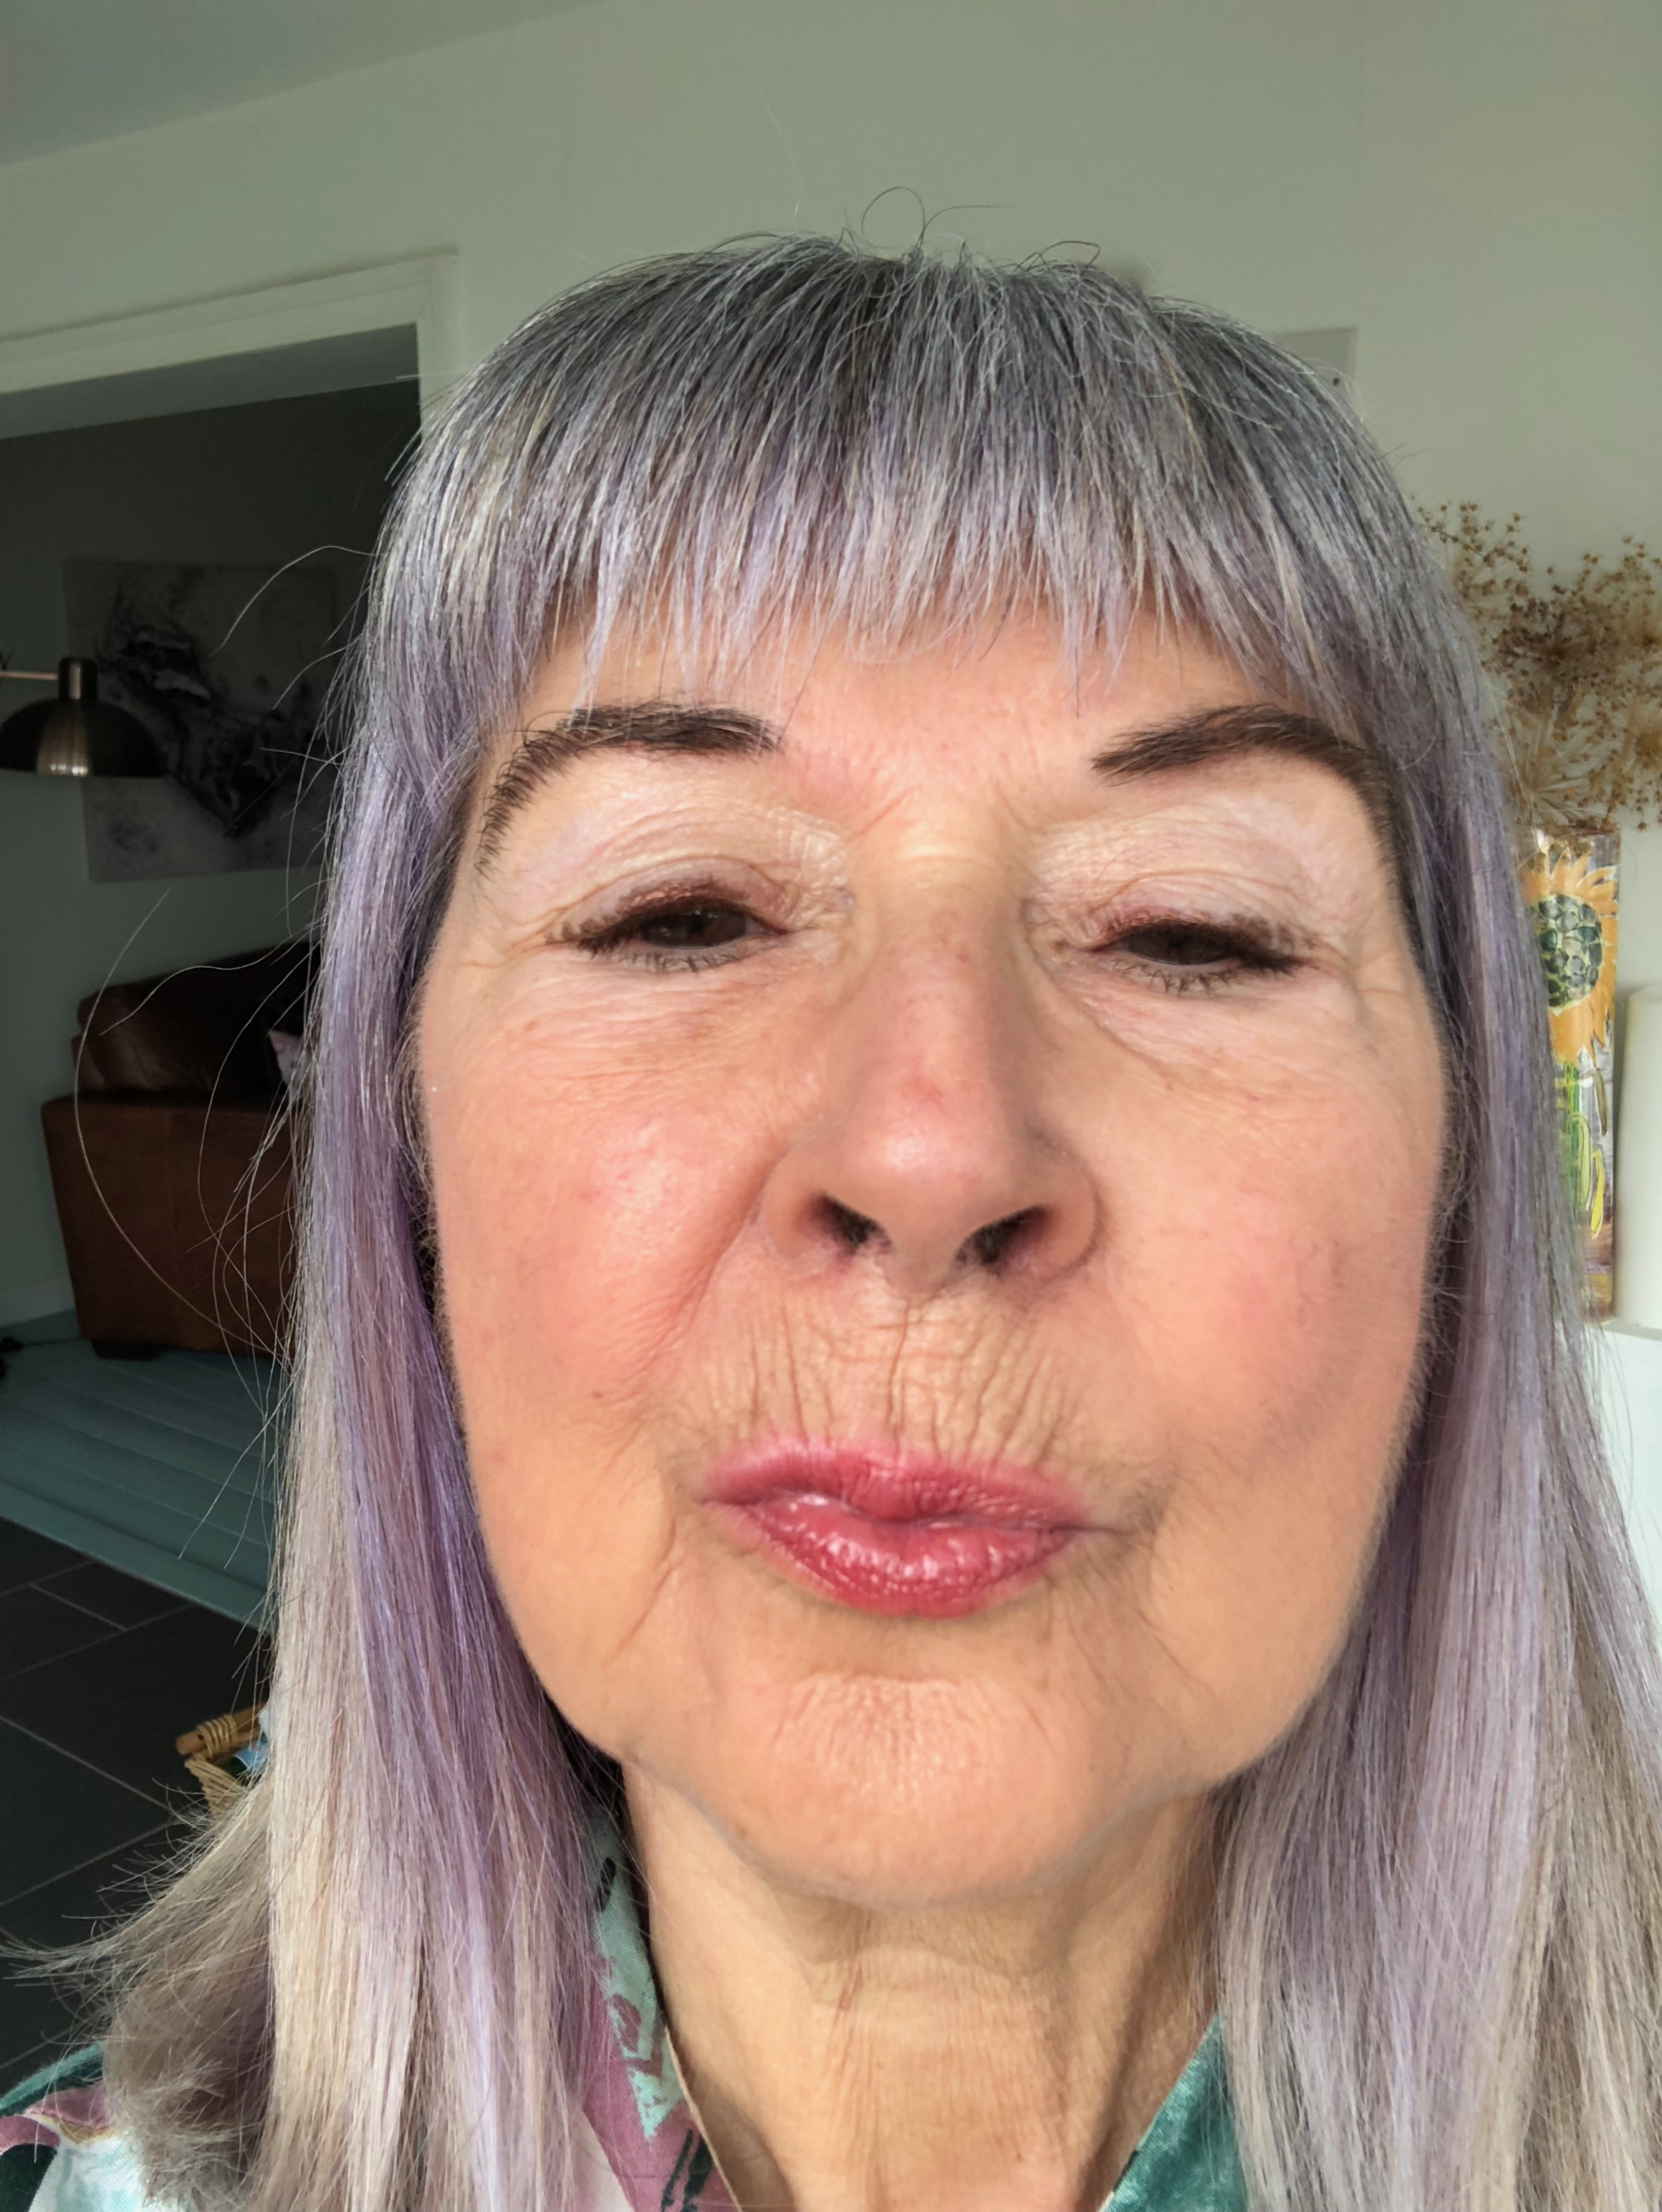 OK I have wrinkles, but I also have my health! Alternative Ageing is the only way to go if you want to be free of illness & daily prescription drugs in your mid-sixties!